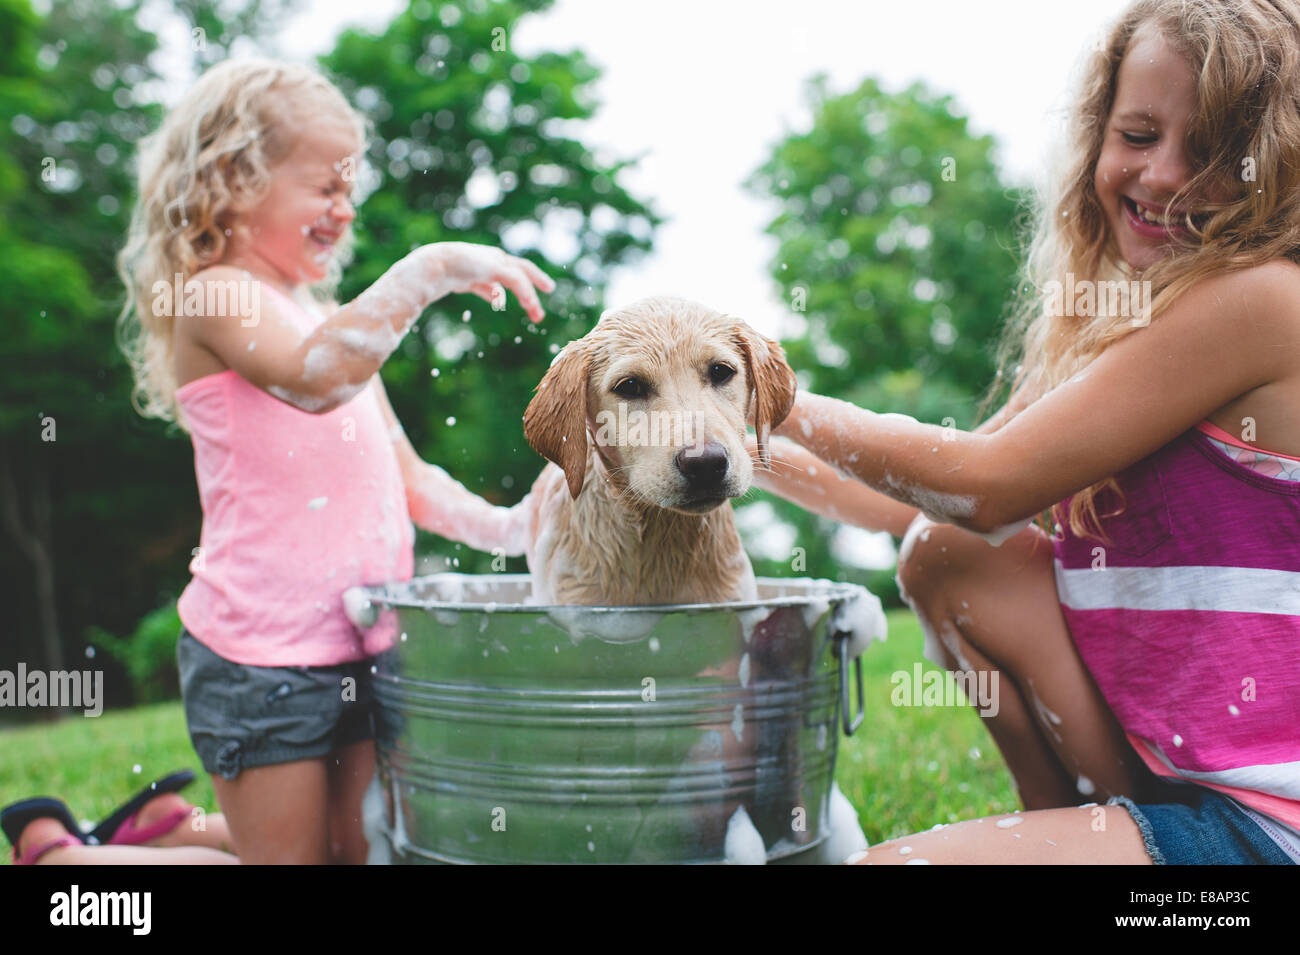 Labrador Retriever puppy in bucket shaking bath water at sisters - Stock Image